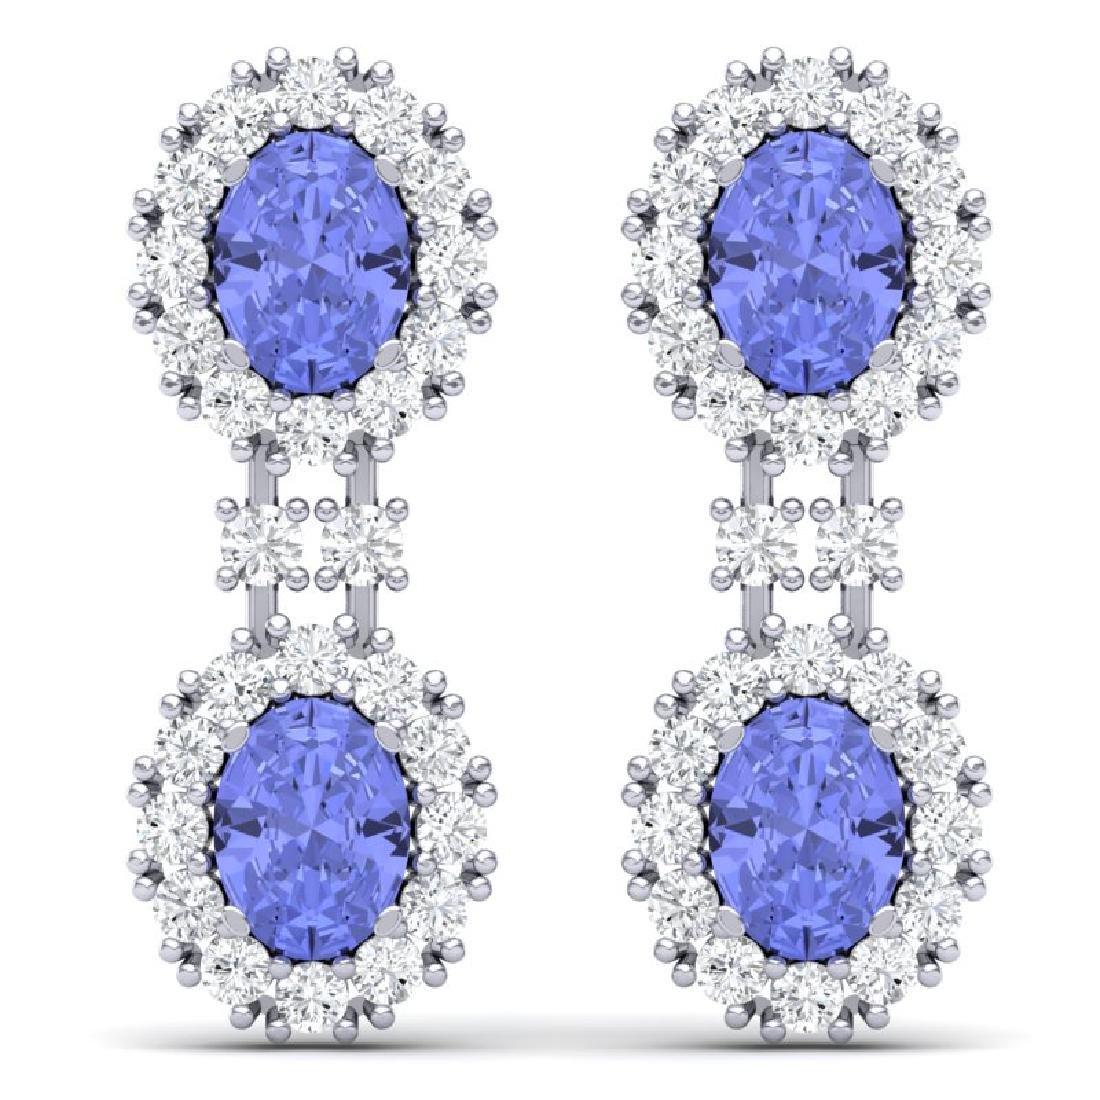 8.35 CTW Royalty Tanzanite & VS Diamond Earrings 18K